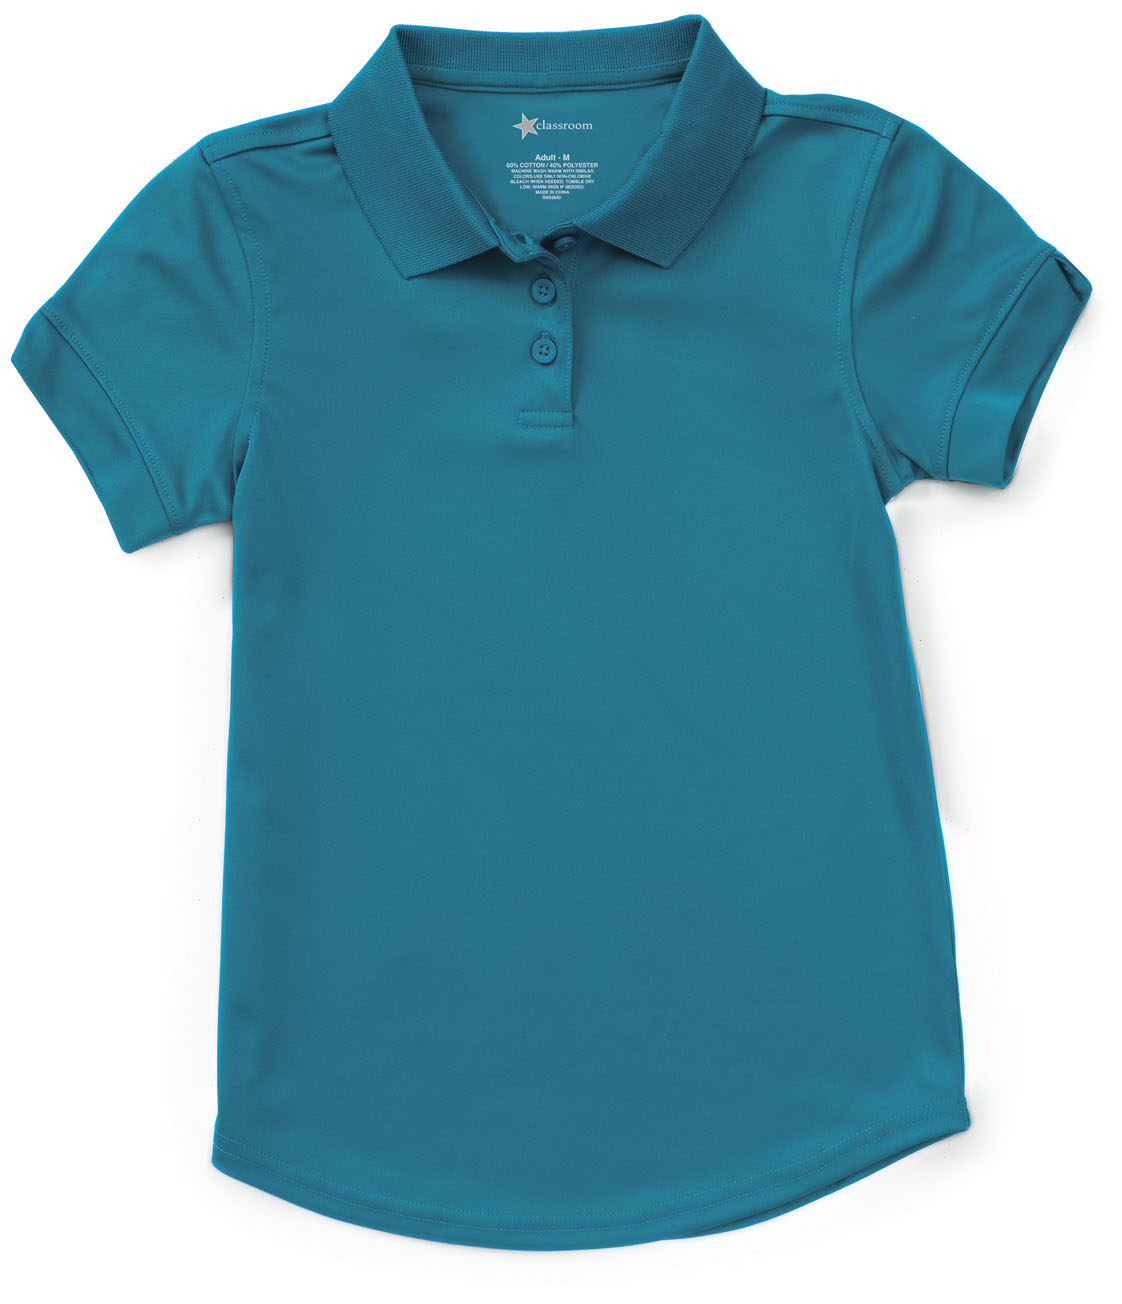 Classroom Girls Ss Moisture Wicking Polo In Teal 58632 Teal From